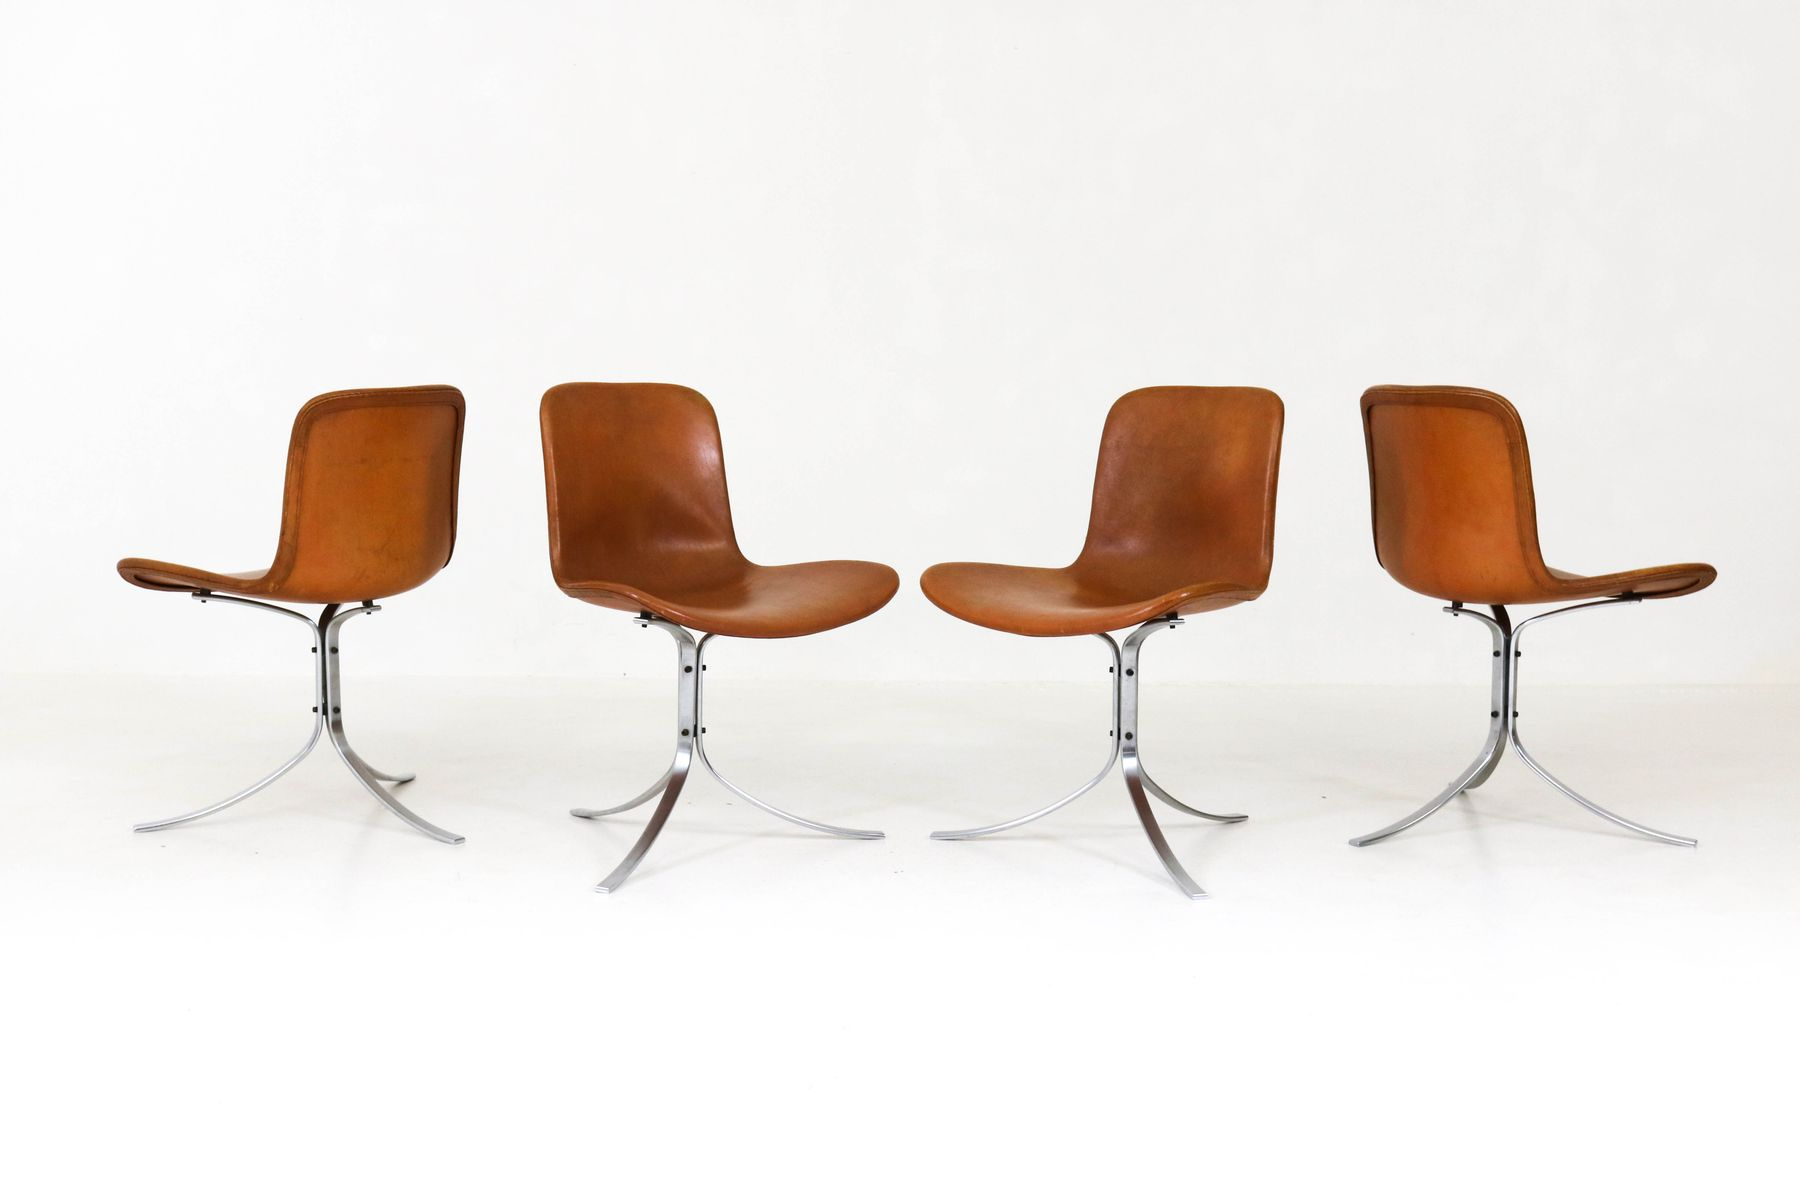 PK 9 Chairs by Poul Kjaerholm for E Kold Christensen 1960s Set